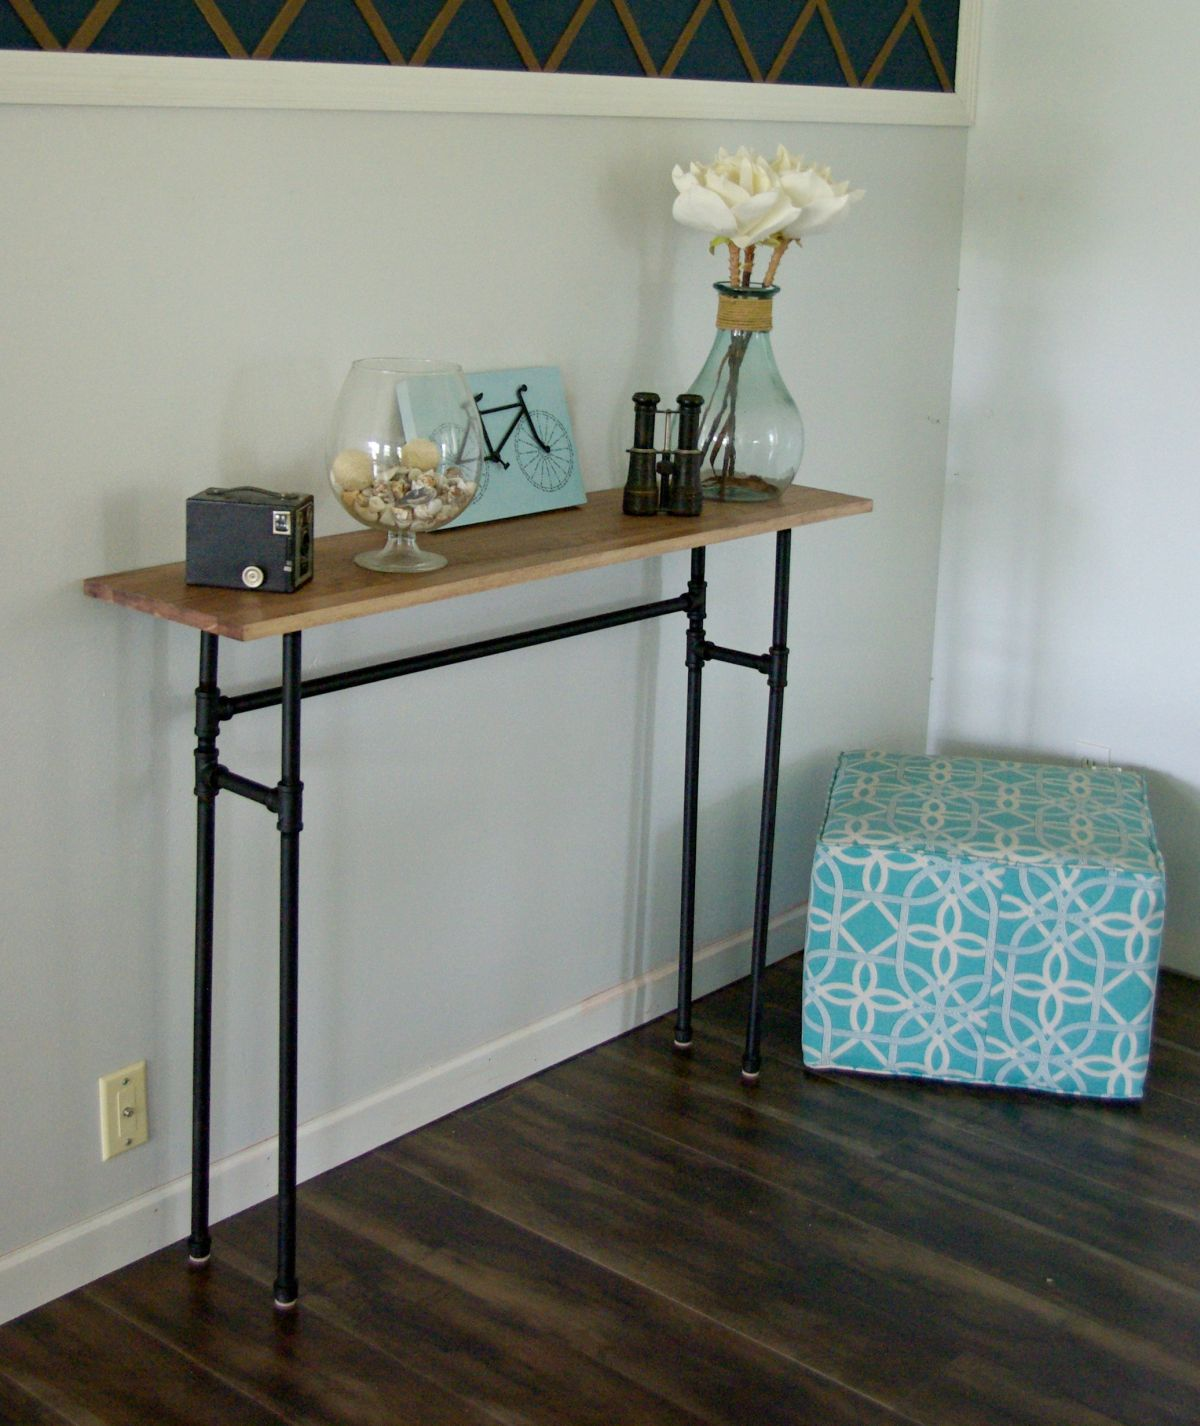 How to build a rustic table using galvanized pipes for 24 wide console table